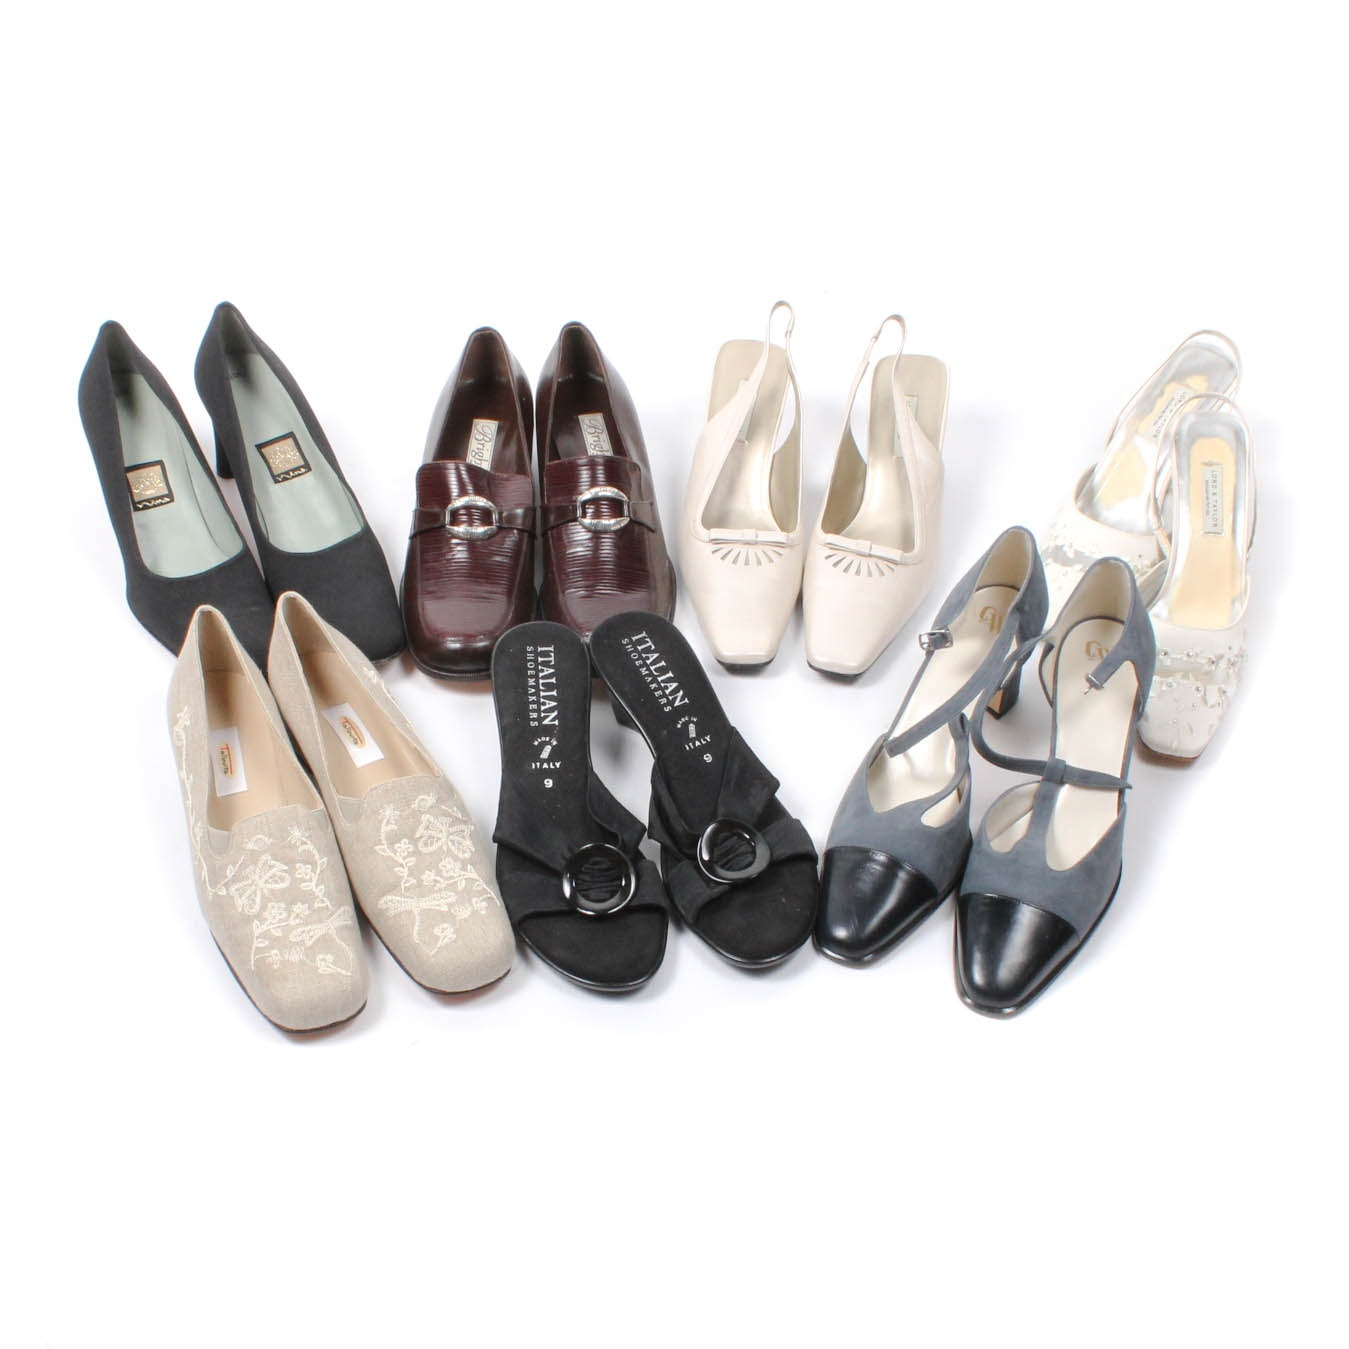 Women's Shoes Including Lord & Taylor